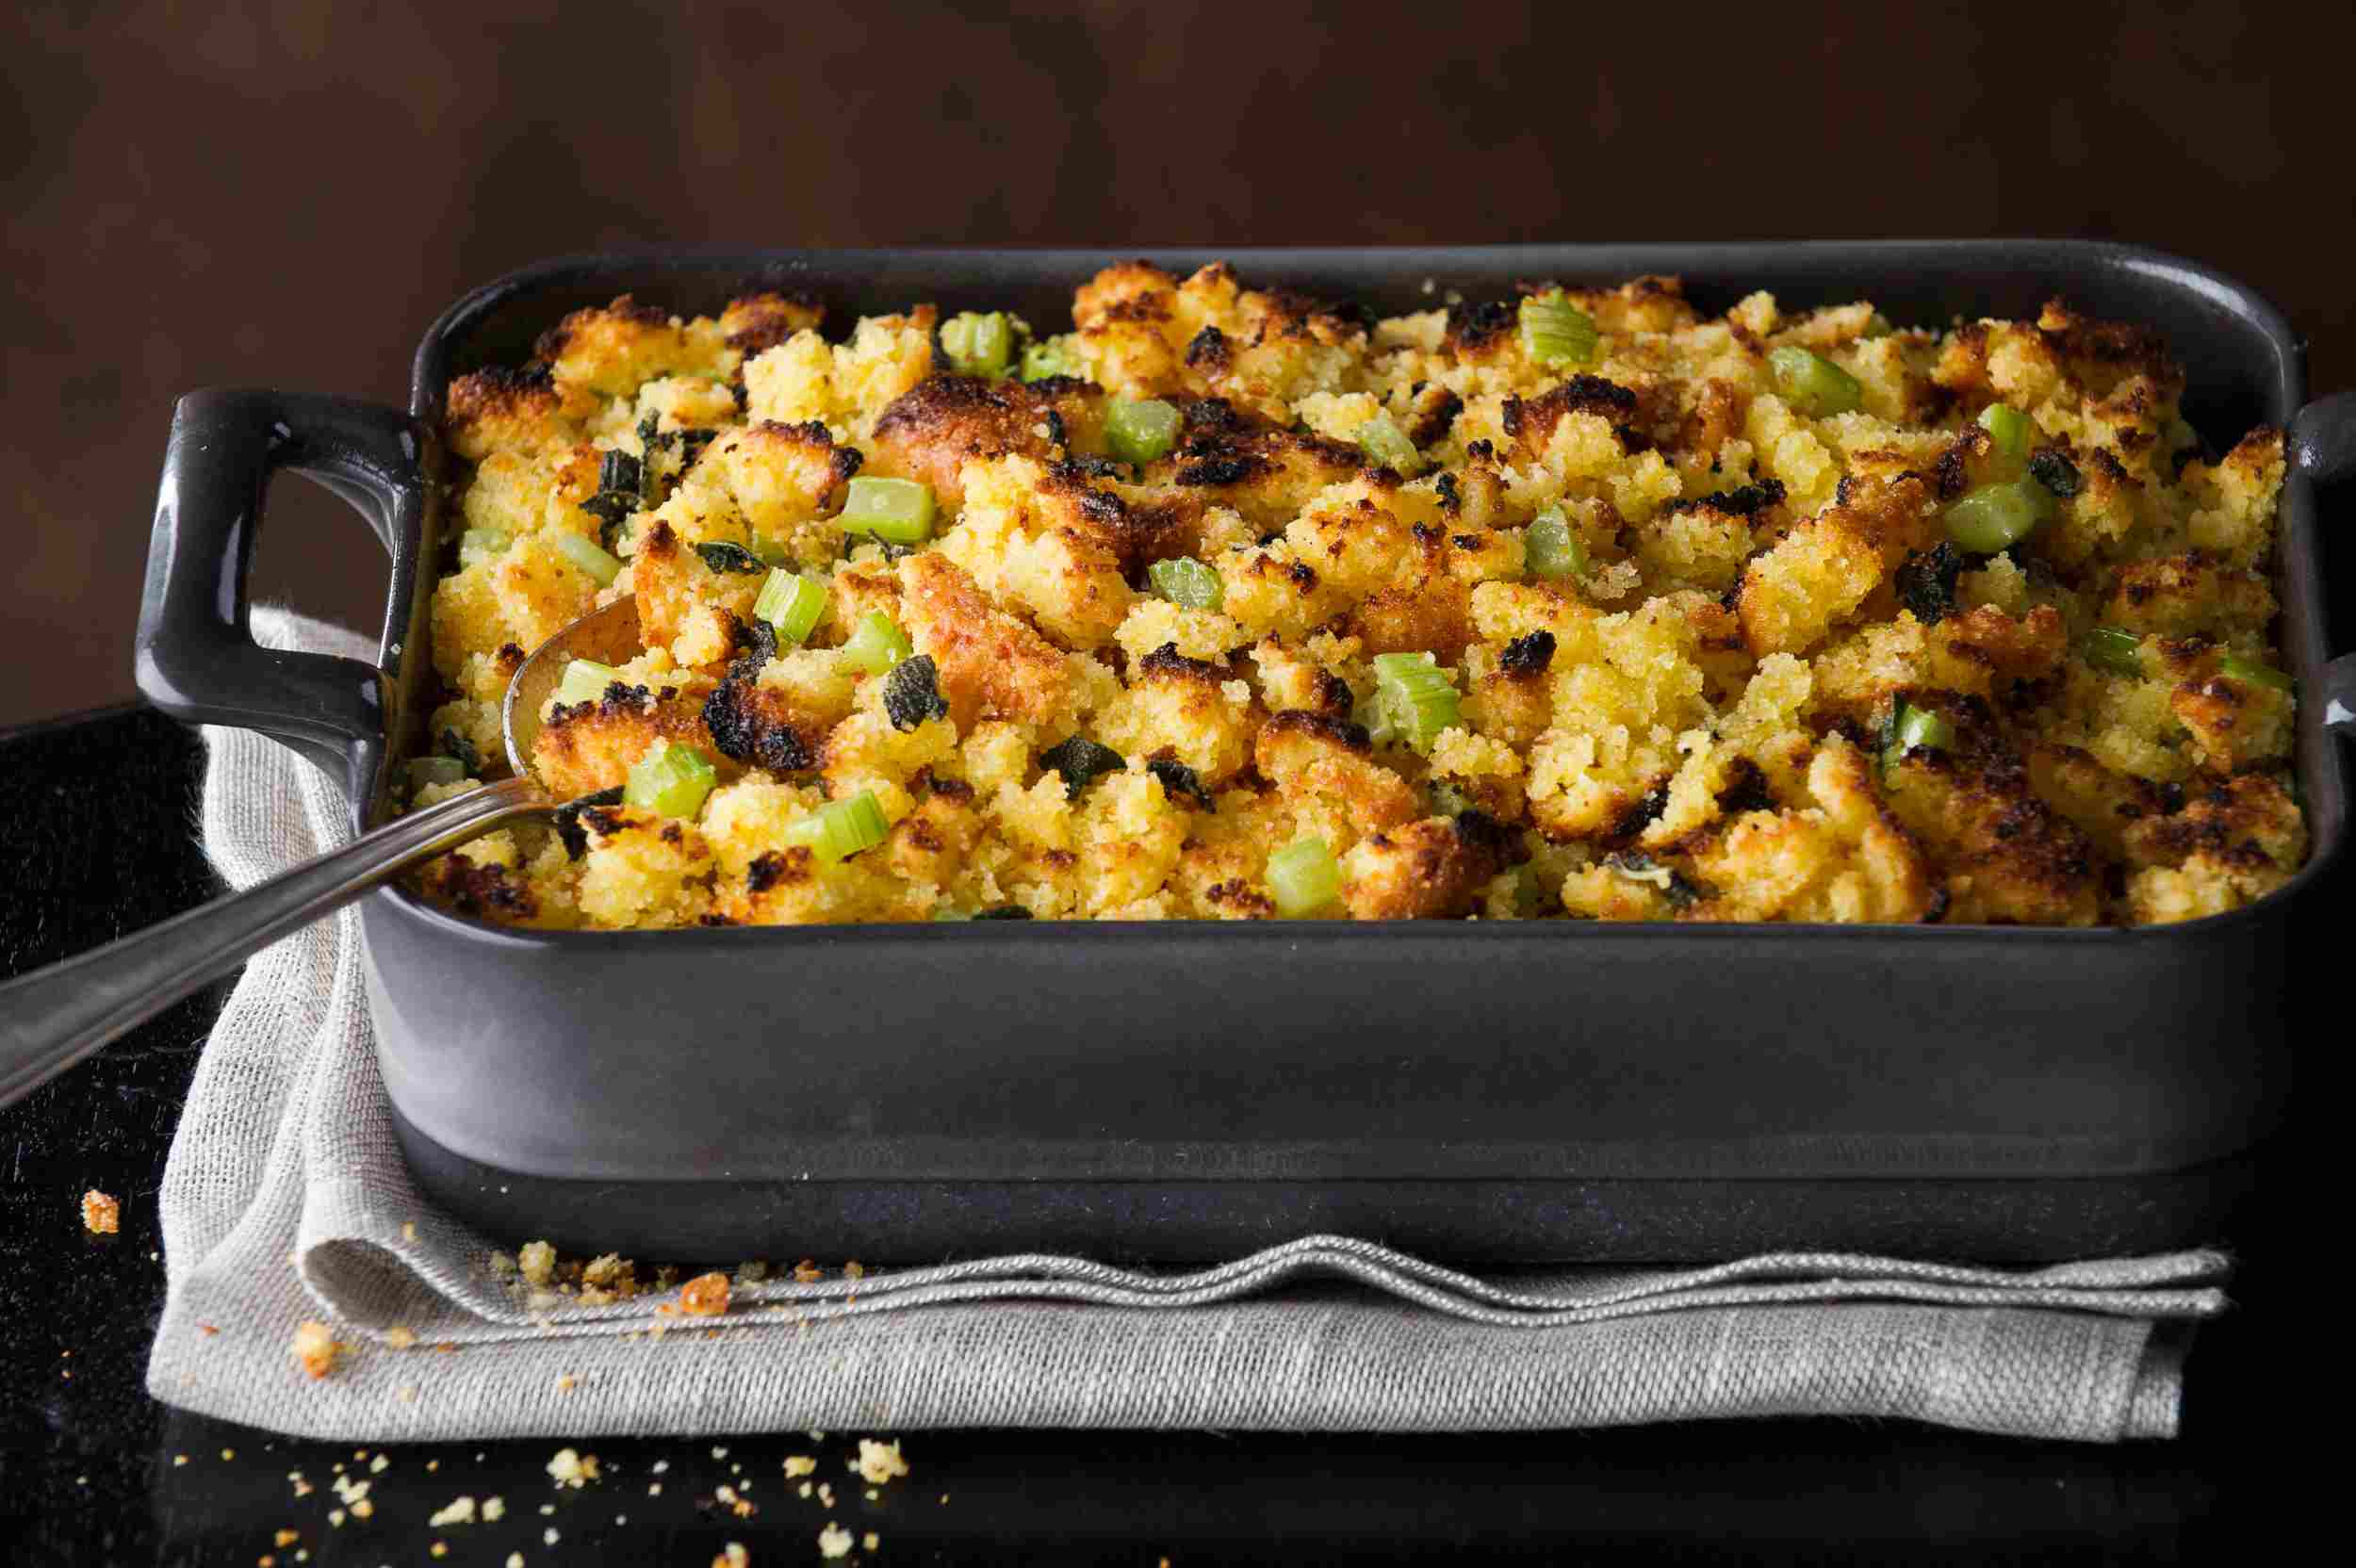 A dish of Thanksgiving stuffing